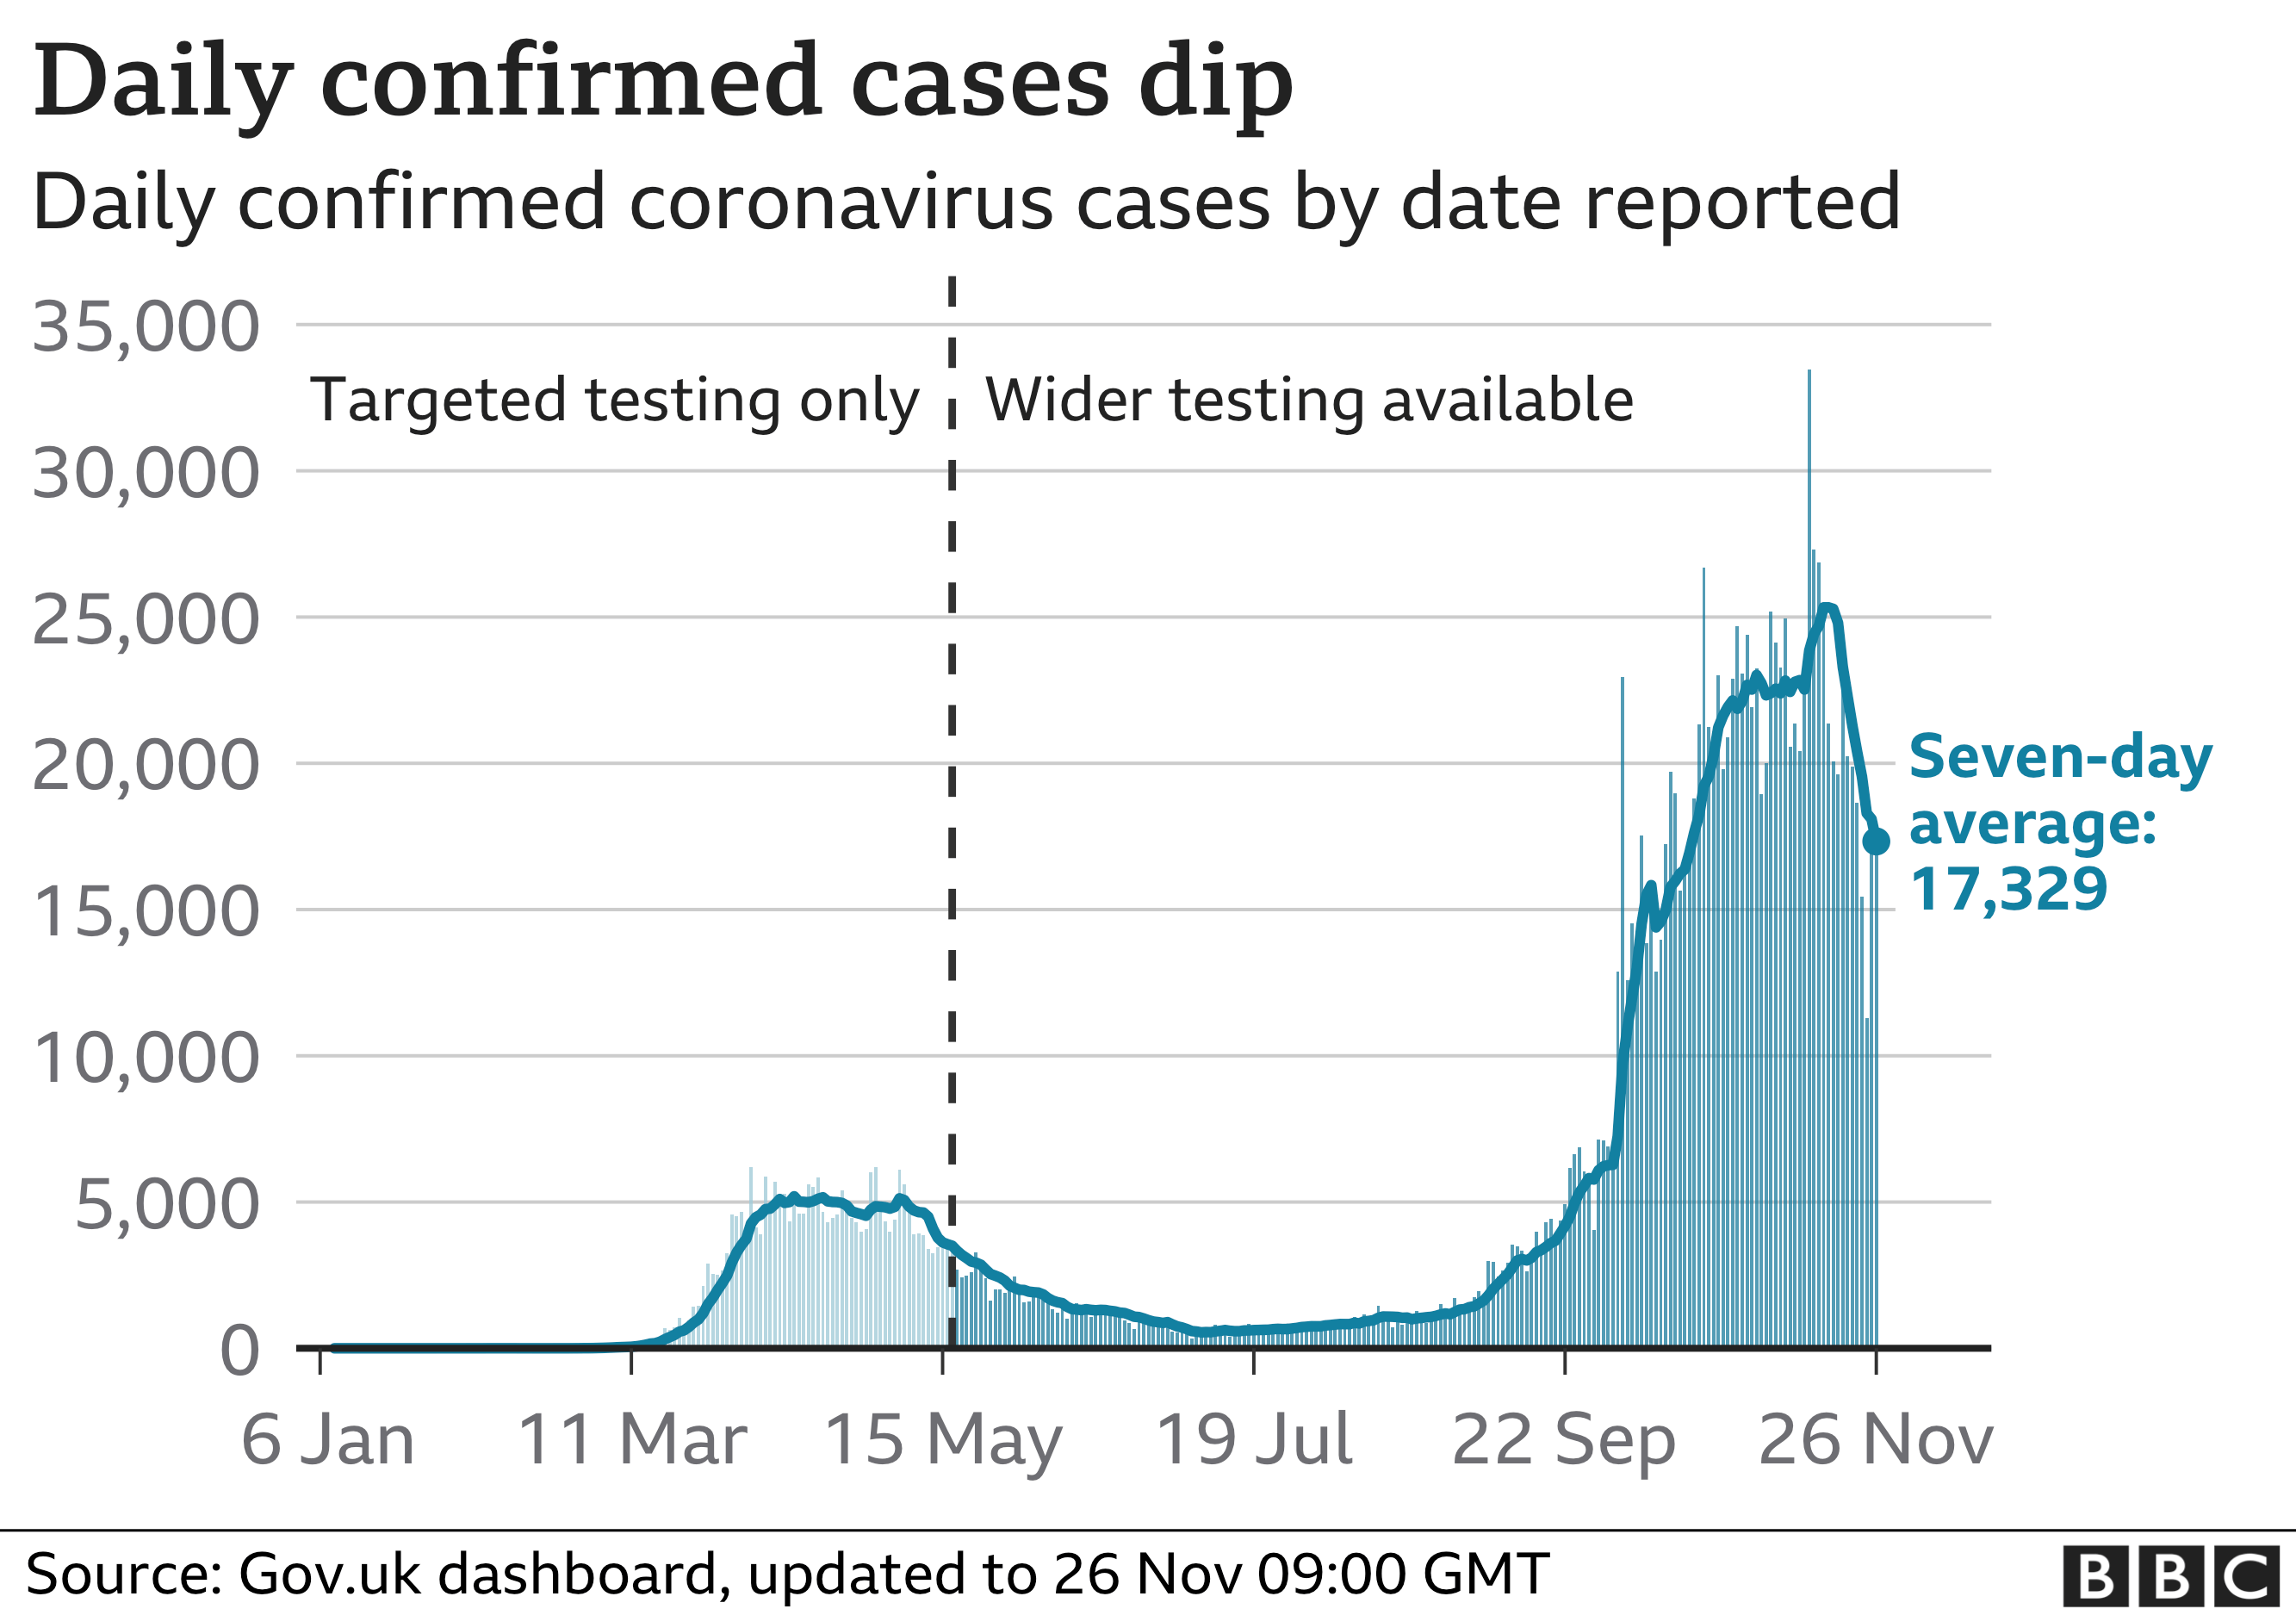 Chart showing confirmed cases dipping